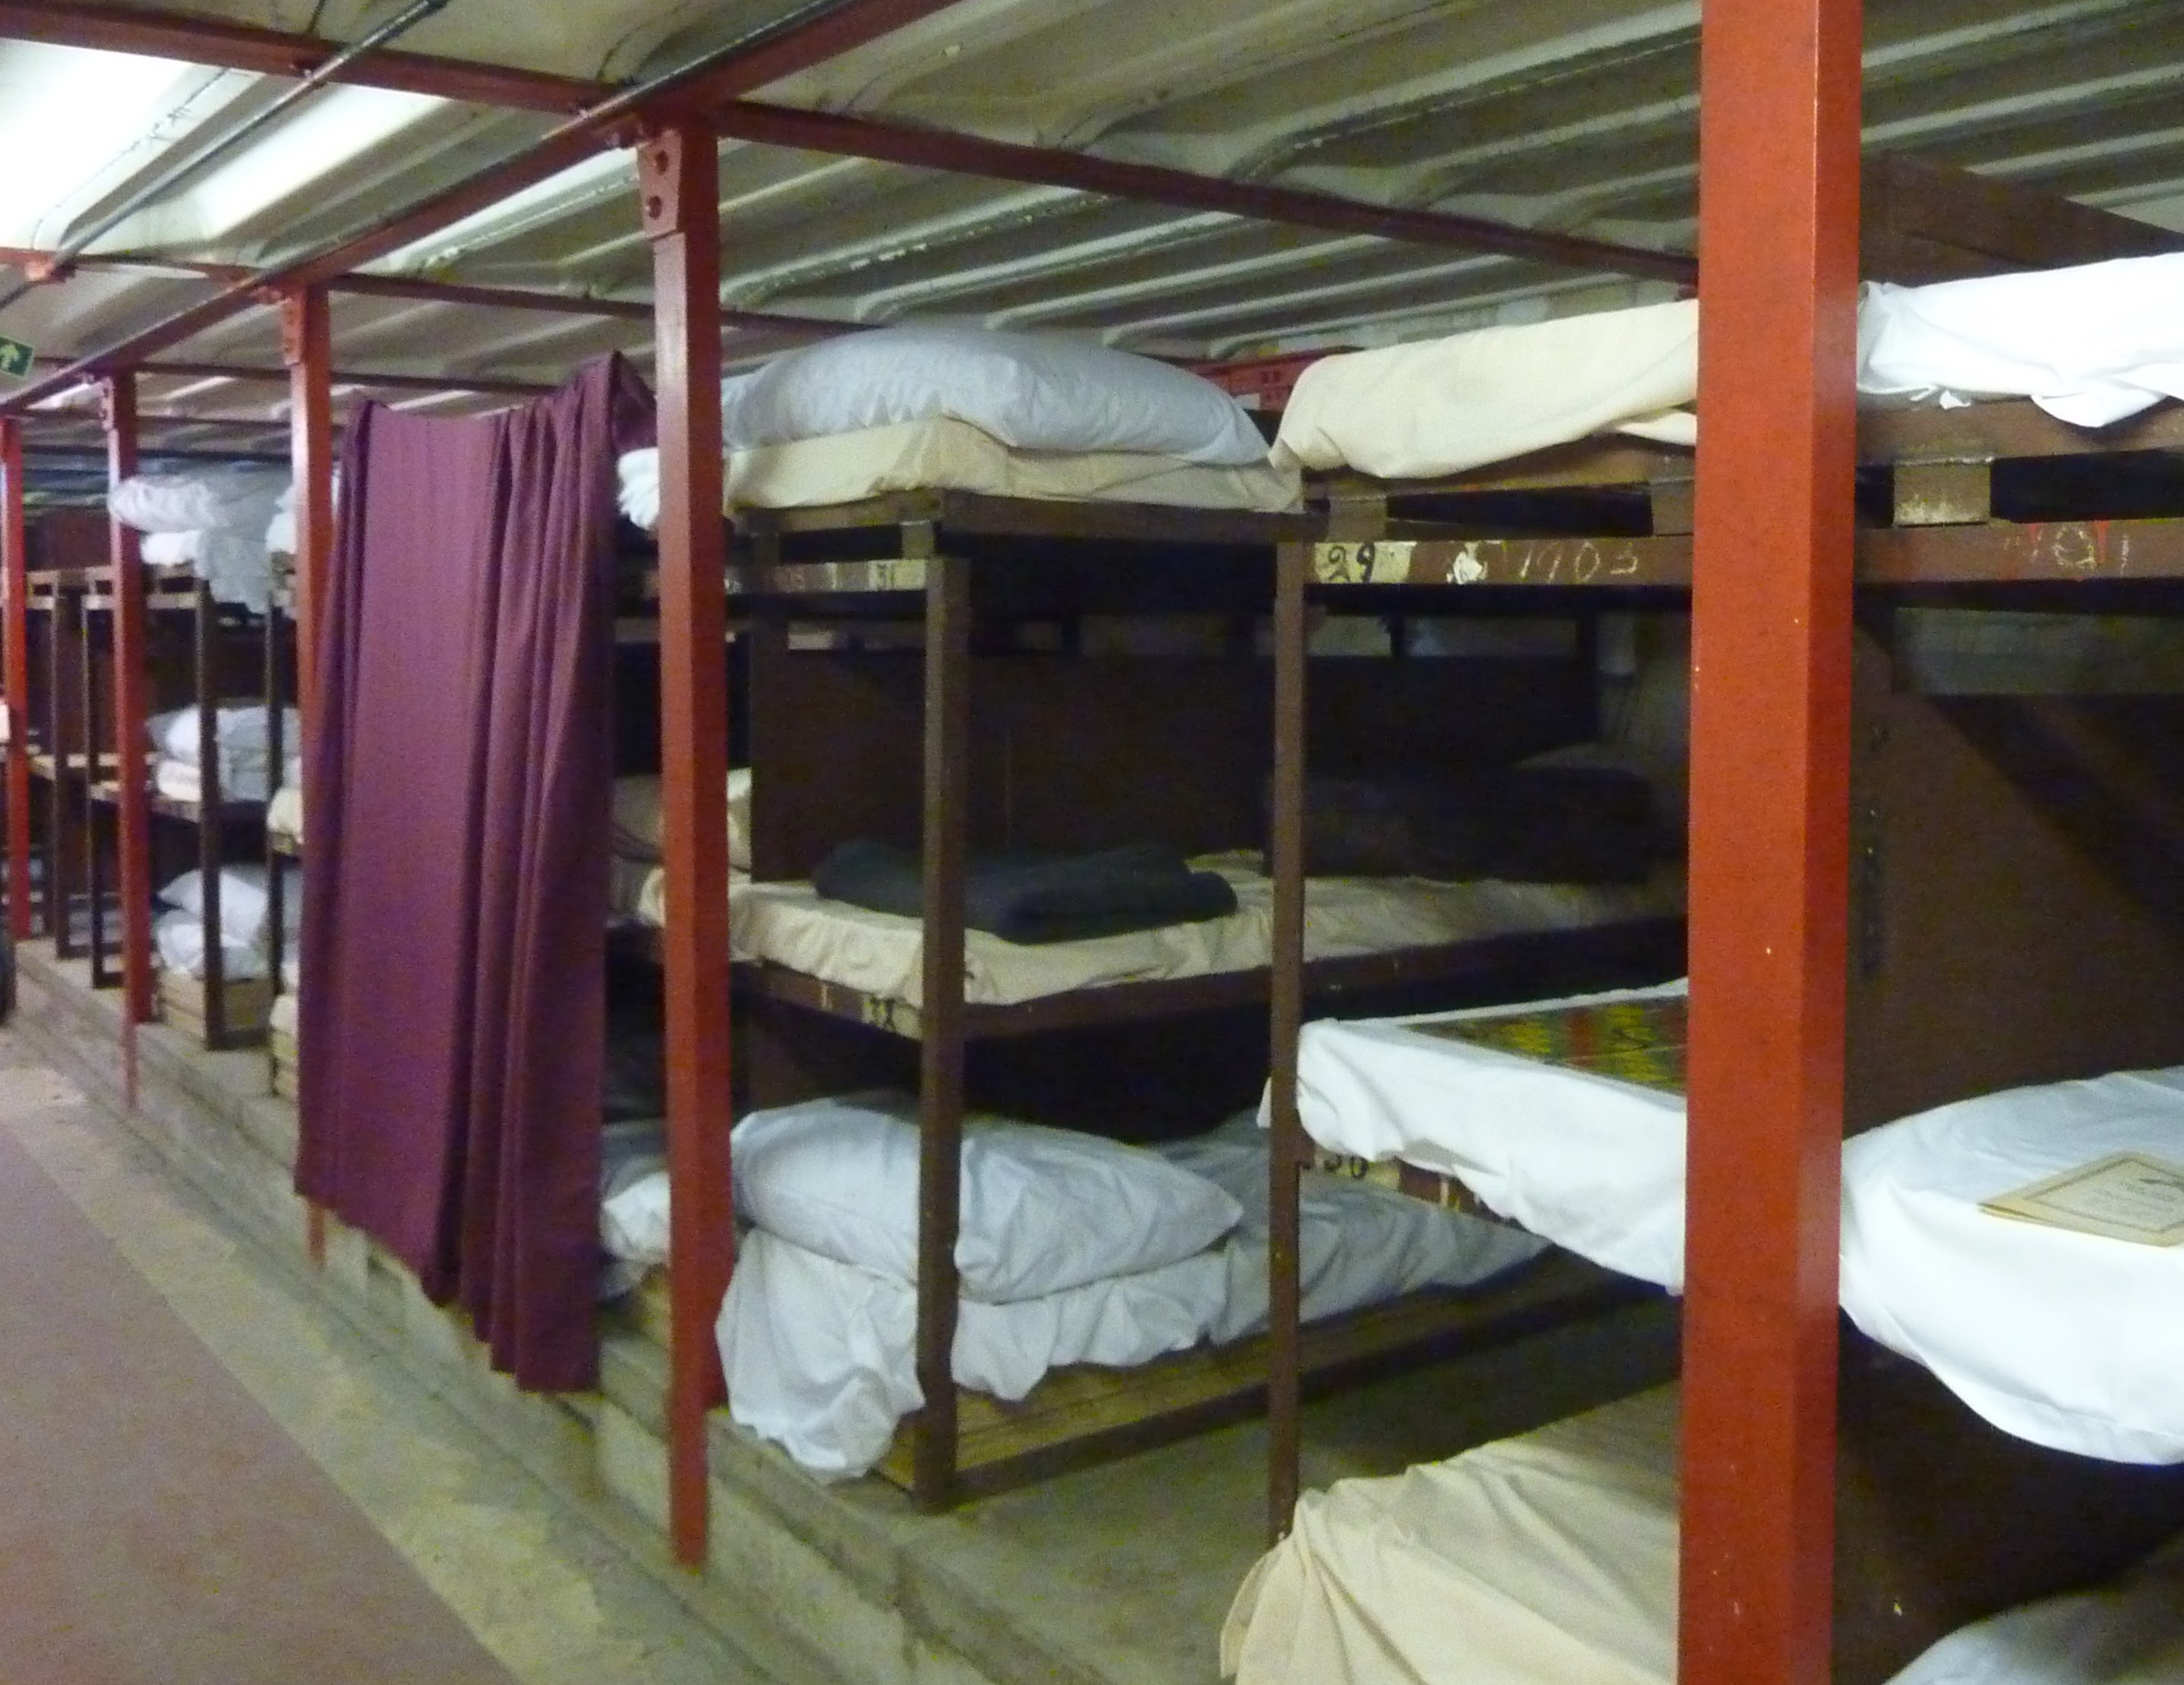 Clapham South deep-level shelter - bunk beds